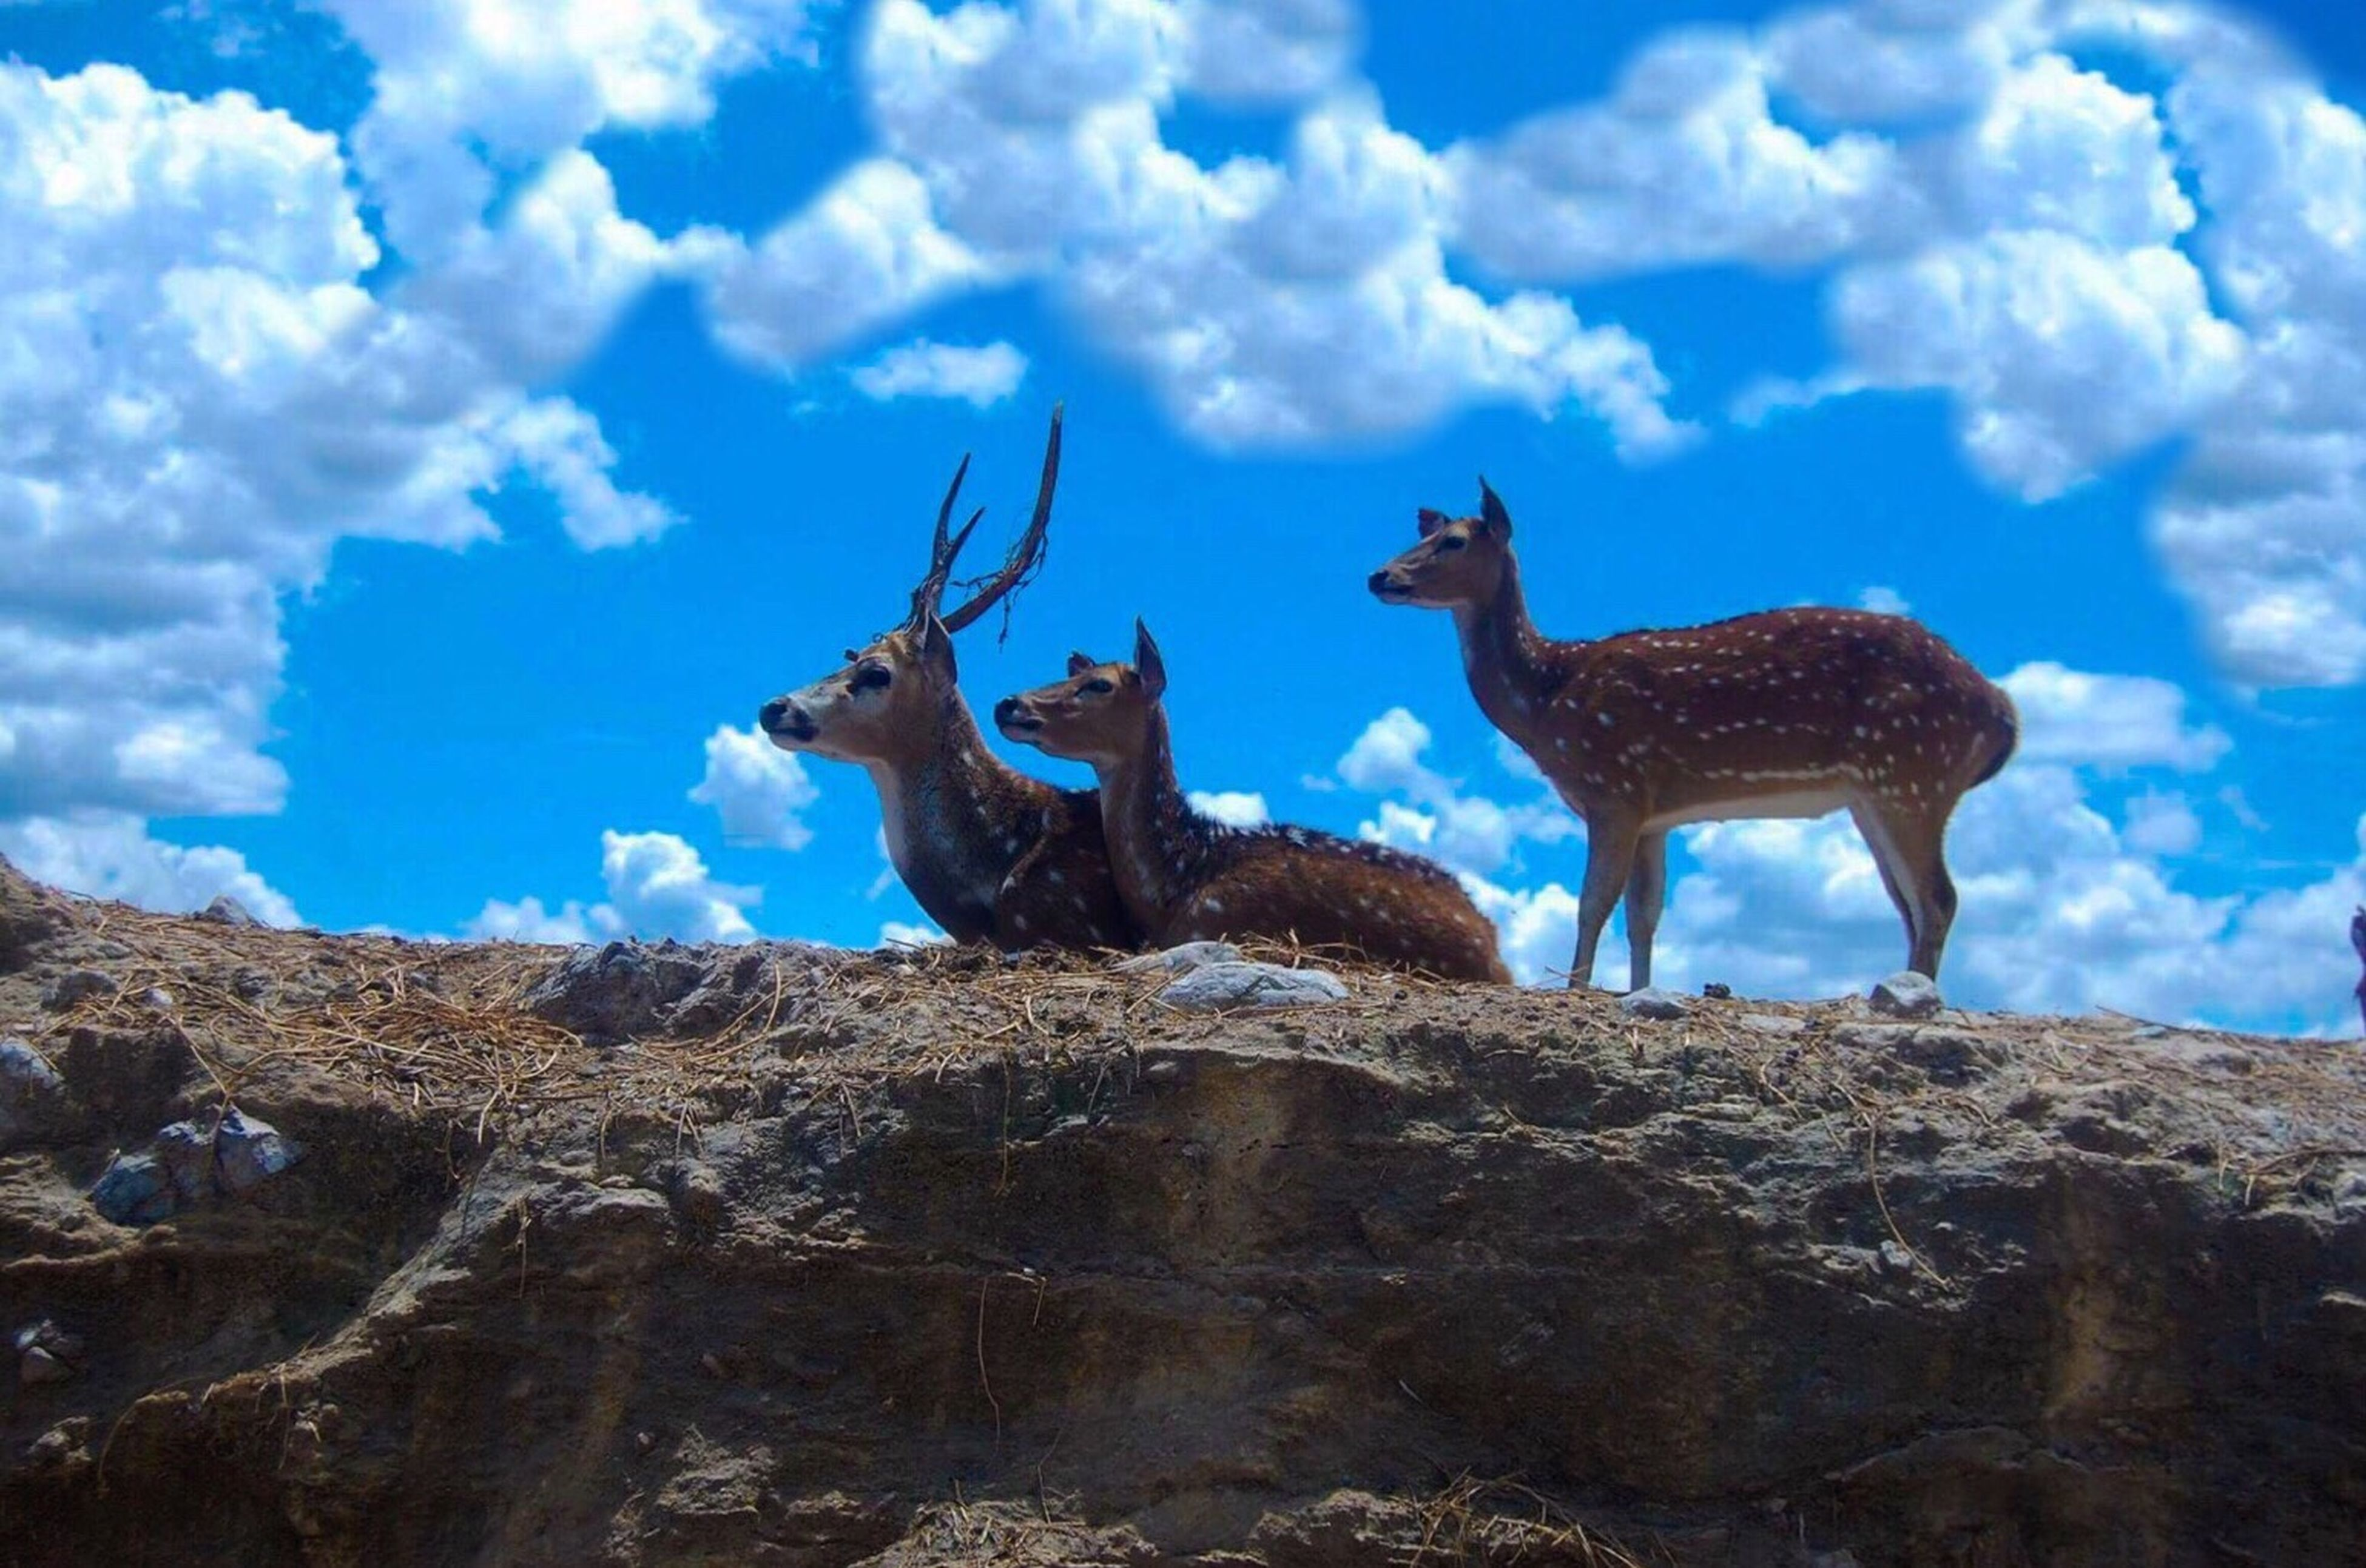 animal themes, sky, cloud, low angle view, blue, cloud - sky, mammal, domestic animals, tranquility, day, outdoors, nature, zoology, tranquil scene, livestock, mountain, non-urban scene, no people, scenics, solitude